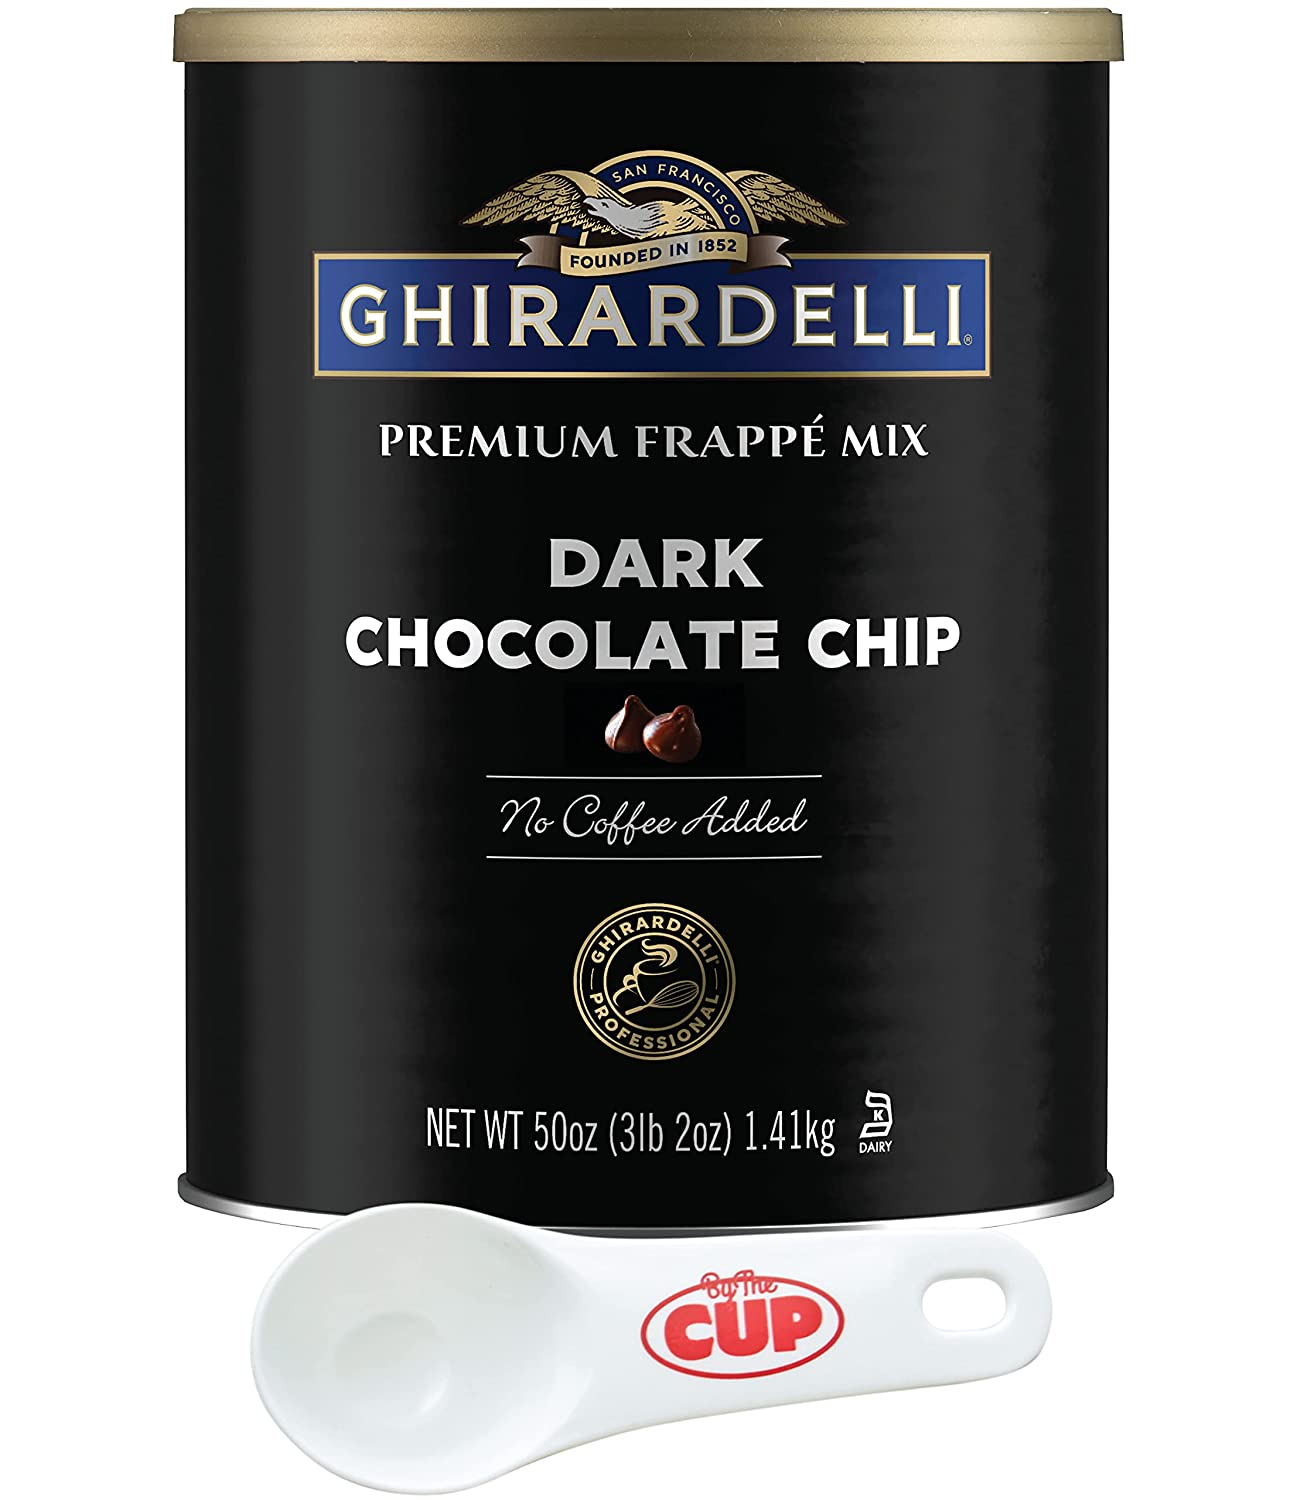 Ghirardelli Premium Frappe Mix Dark Chocolate oz 50 Max 77% OFF Pa Fees free!! Chip Can